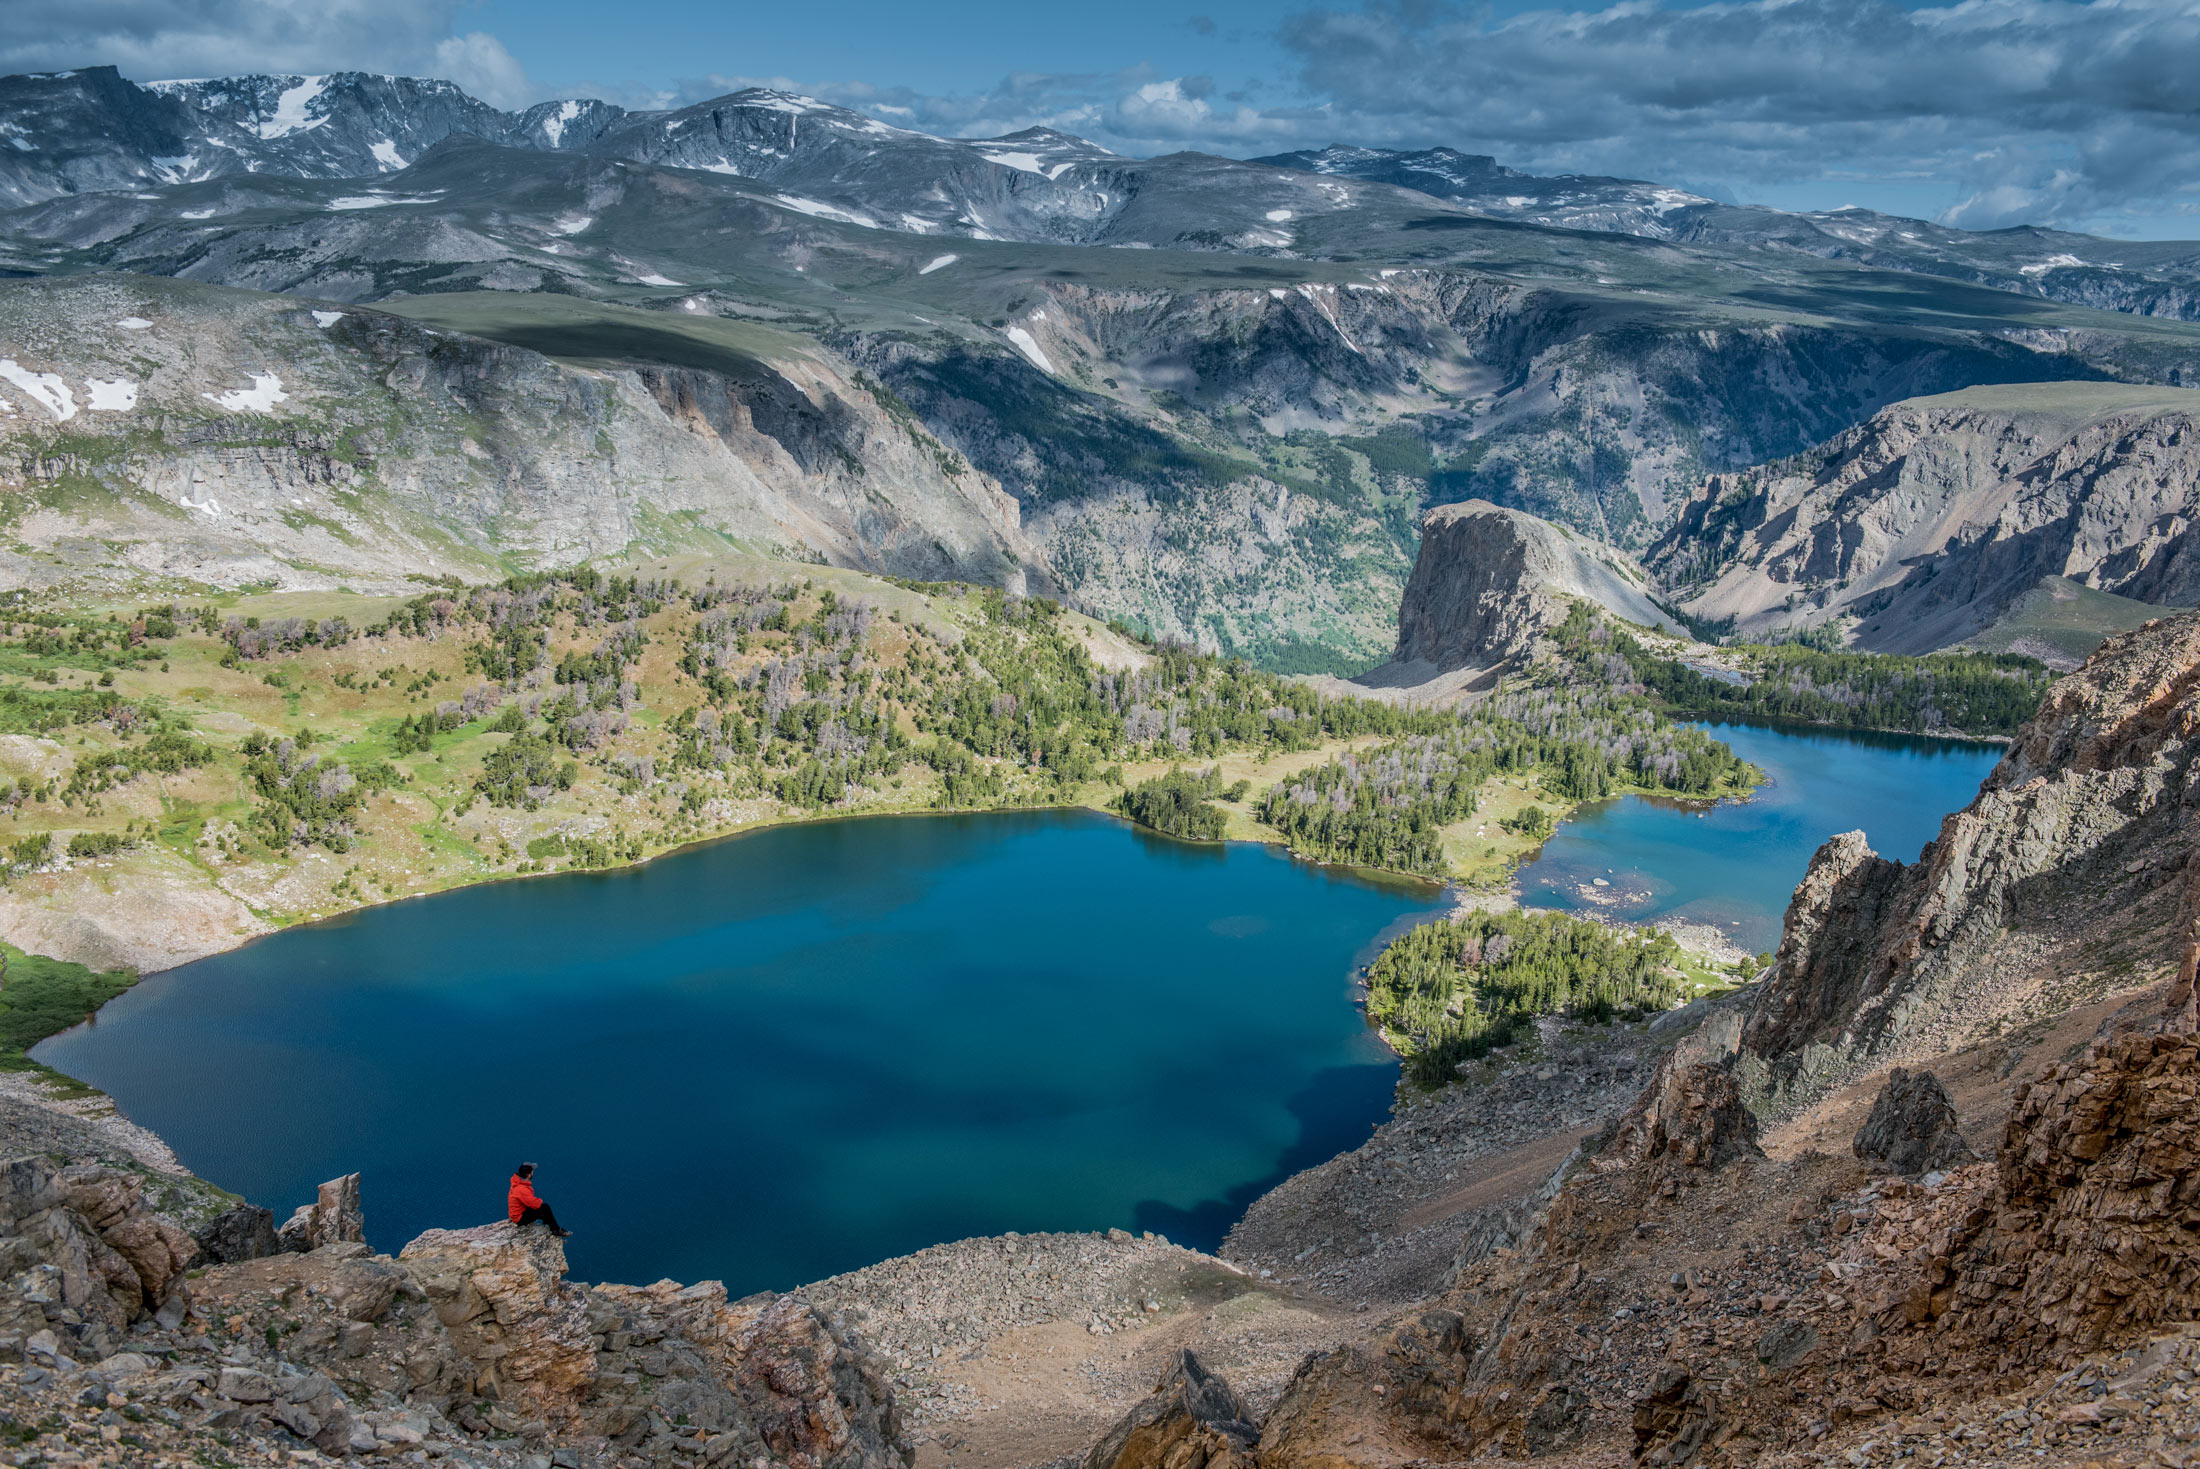 Lake on Beartooth Highway in Yellowstone Country Montana.